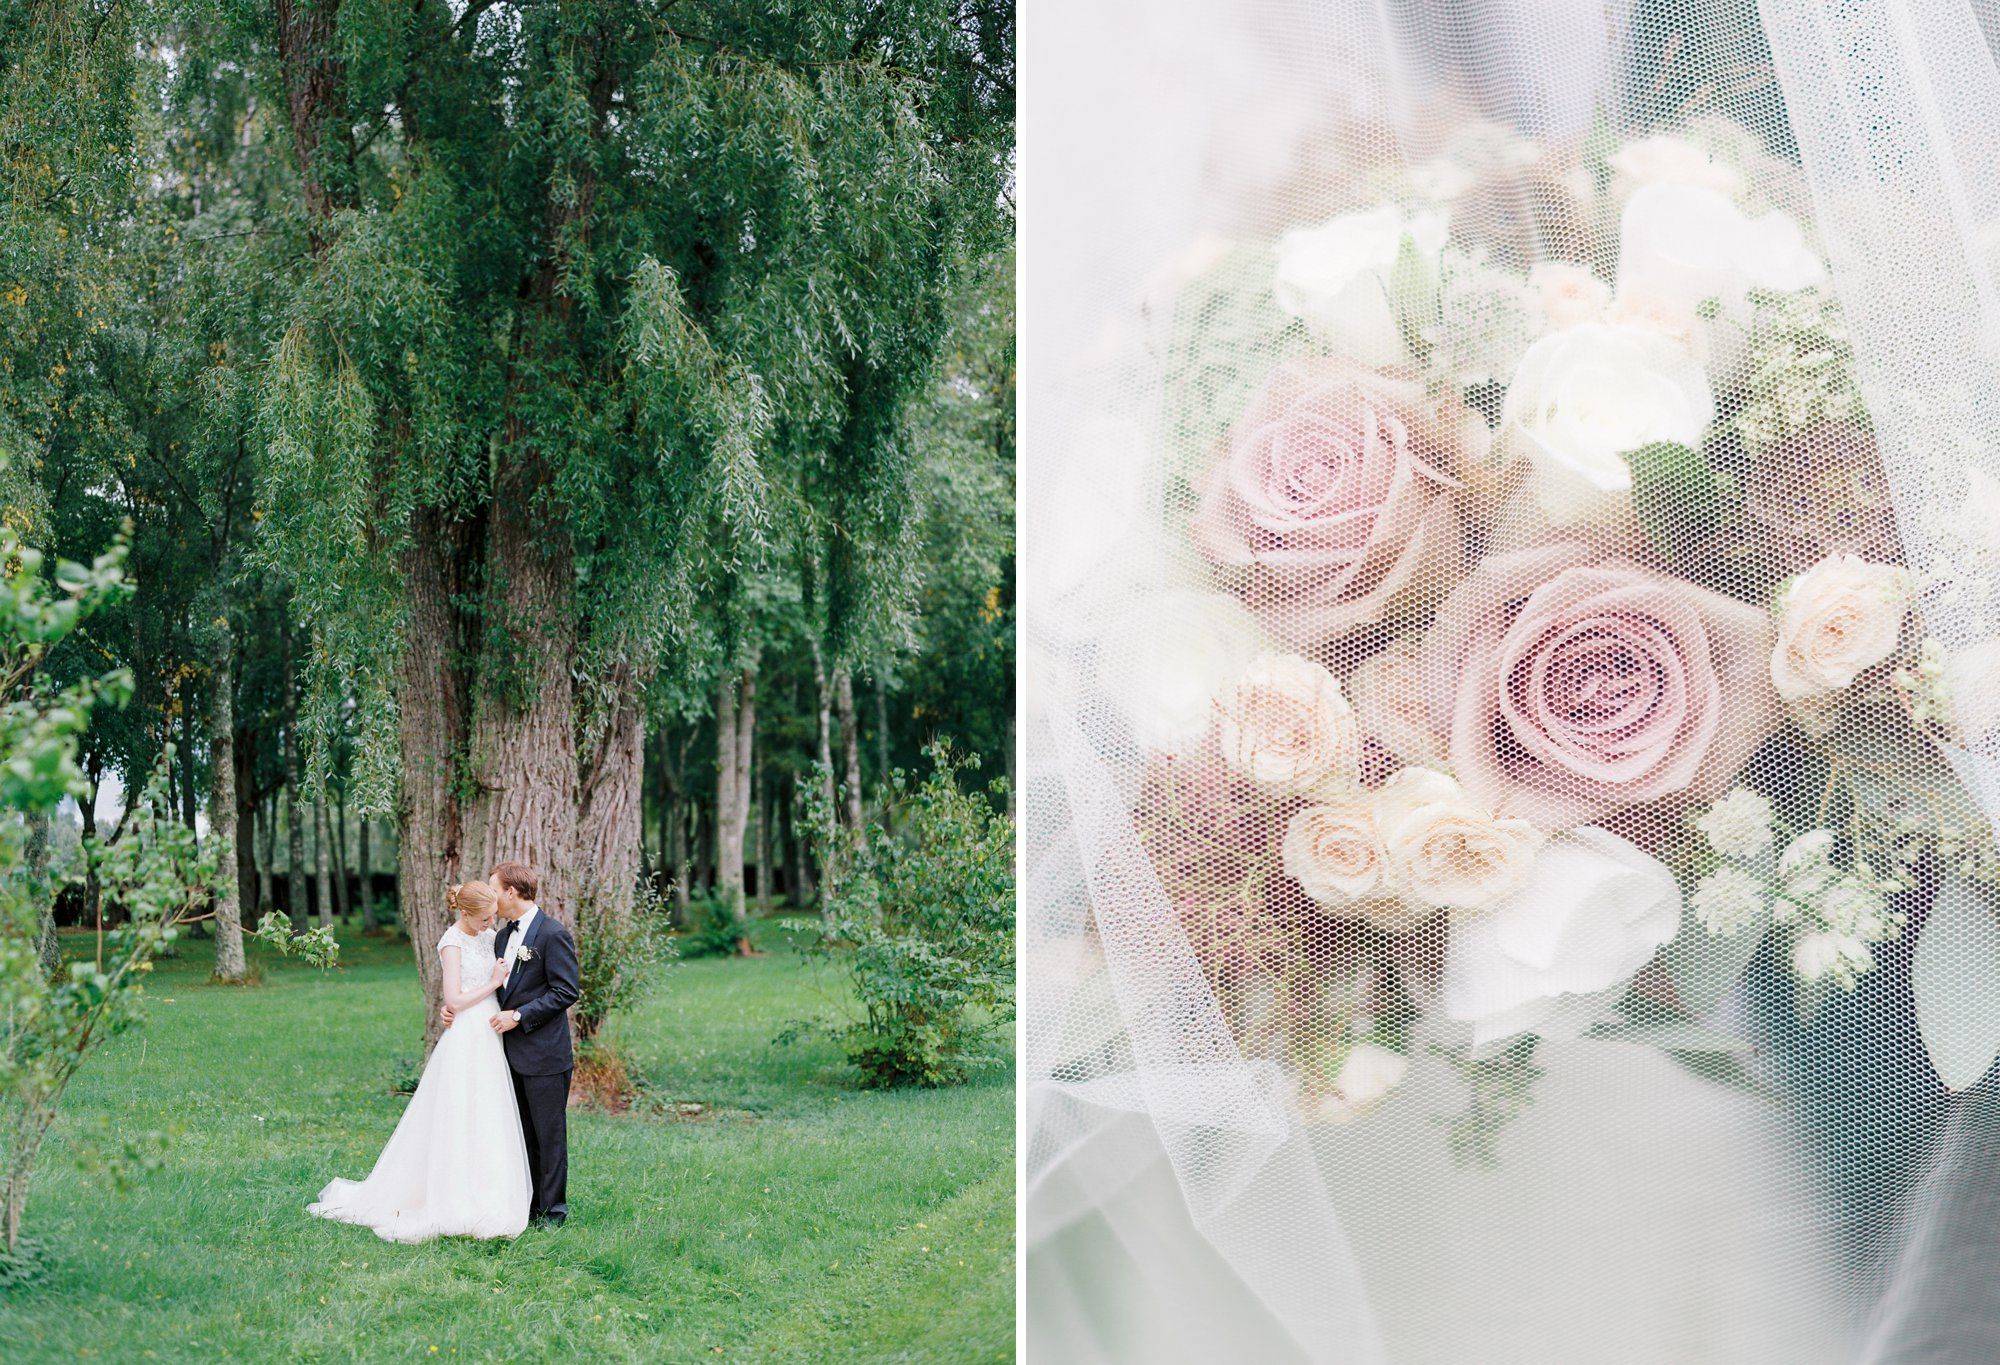 Bride and groom at their wedding in Sweden and Bjertorp slott plus floral detail under veil